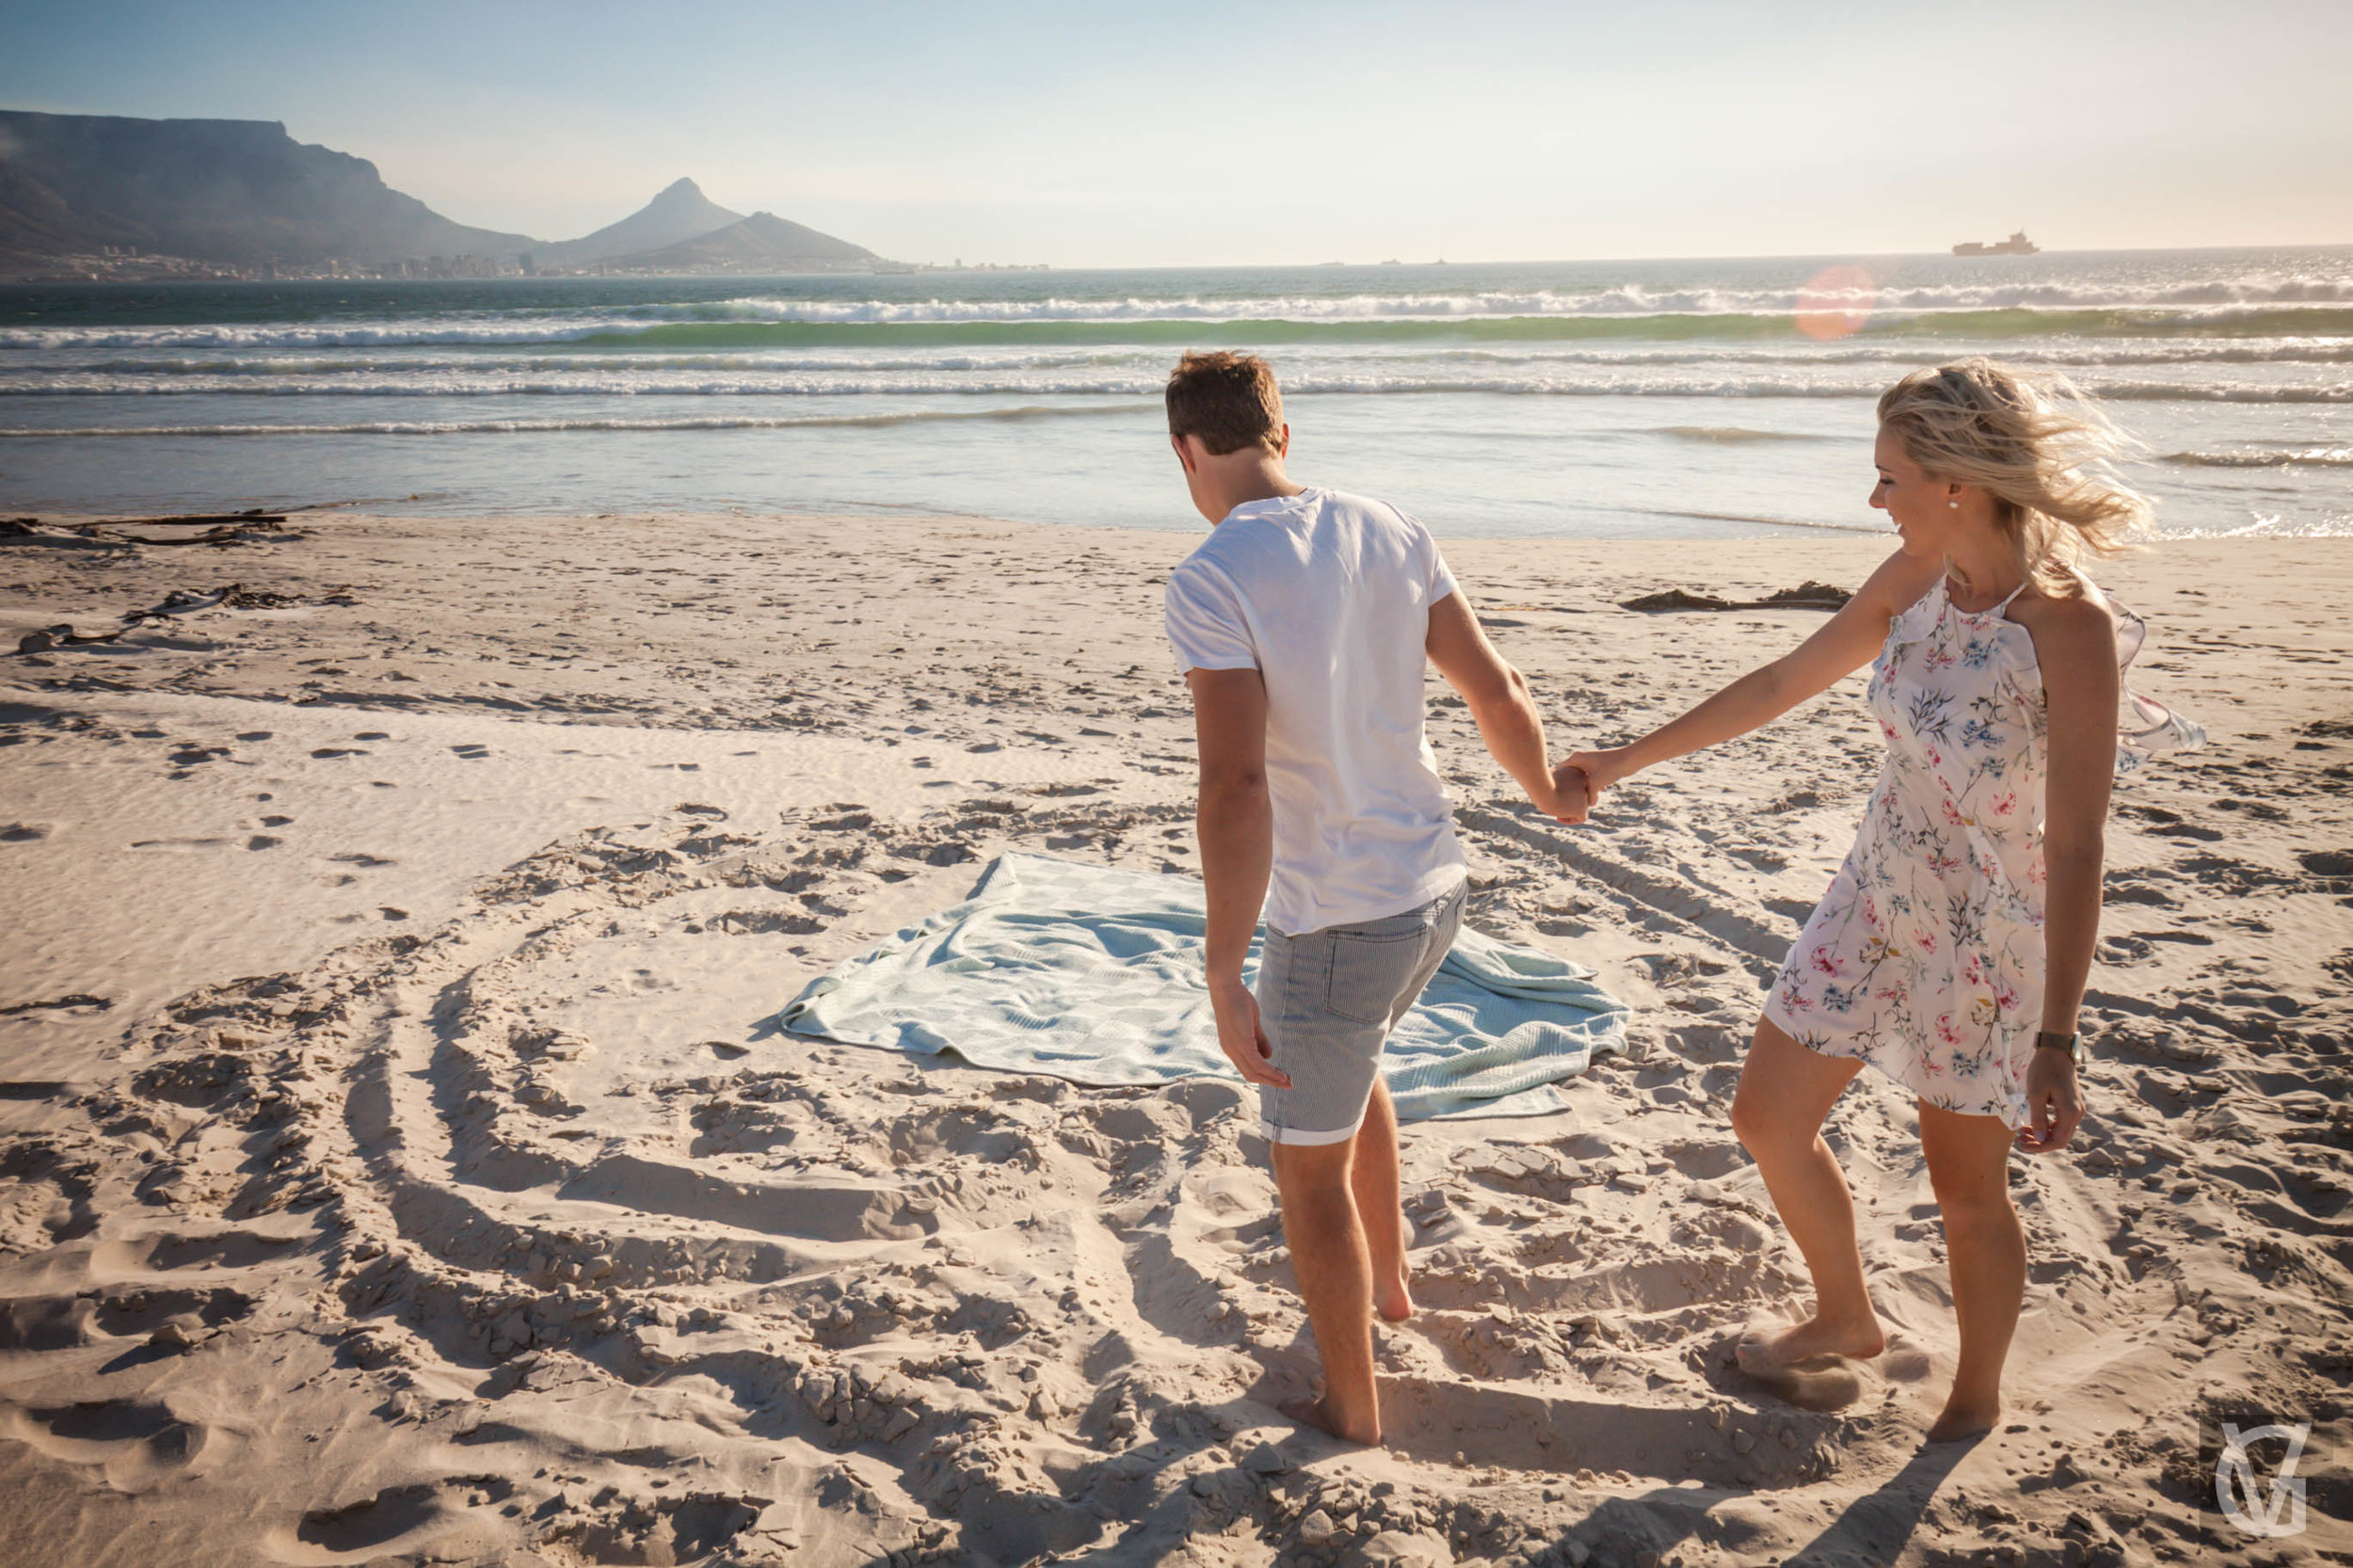 An engaged couple draw a heart in the sand together on a beach